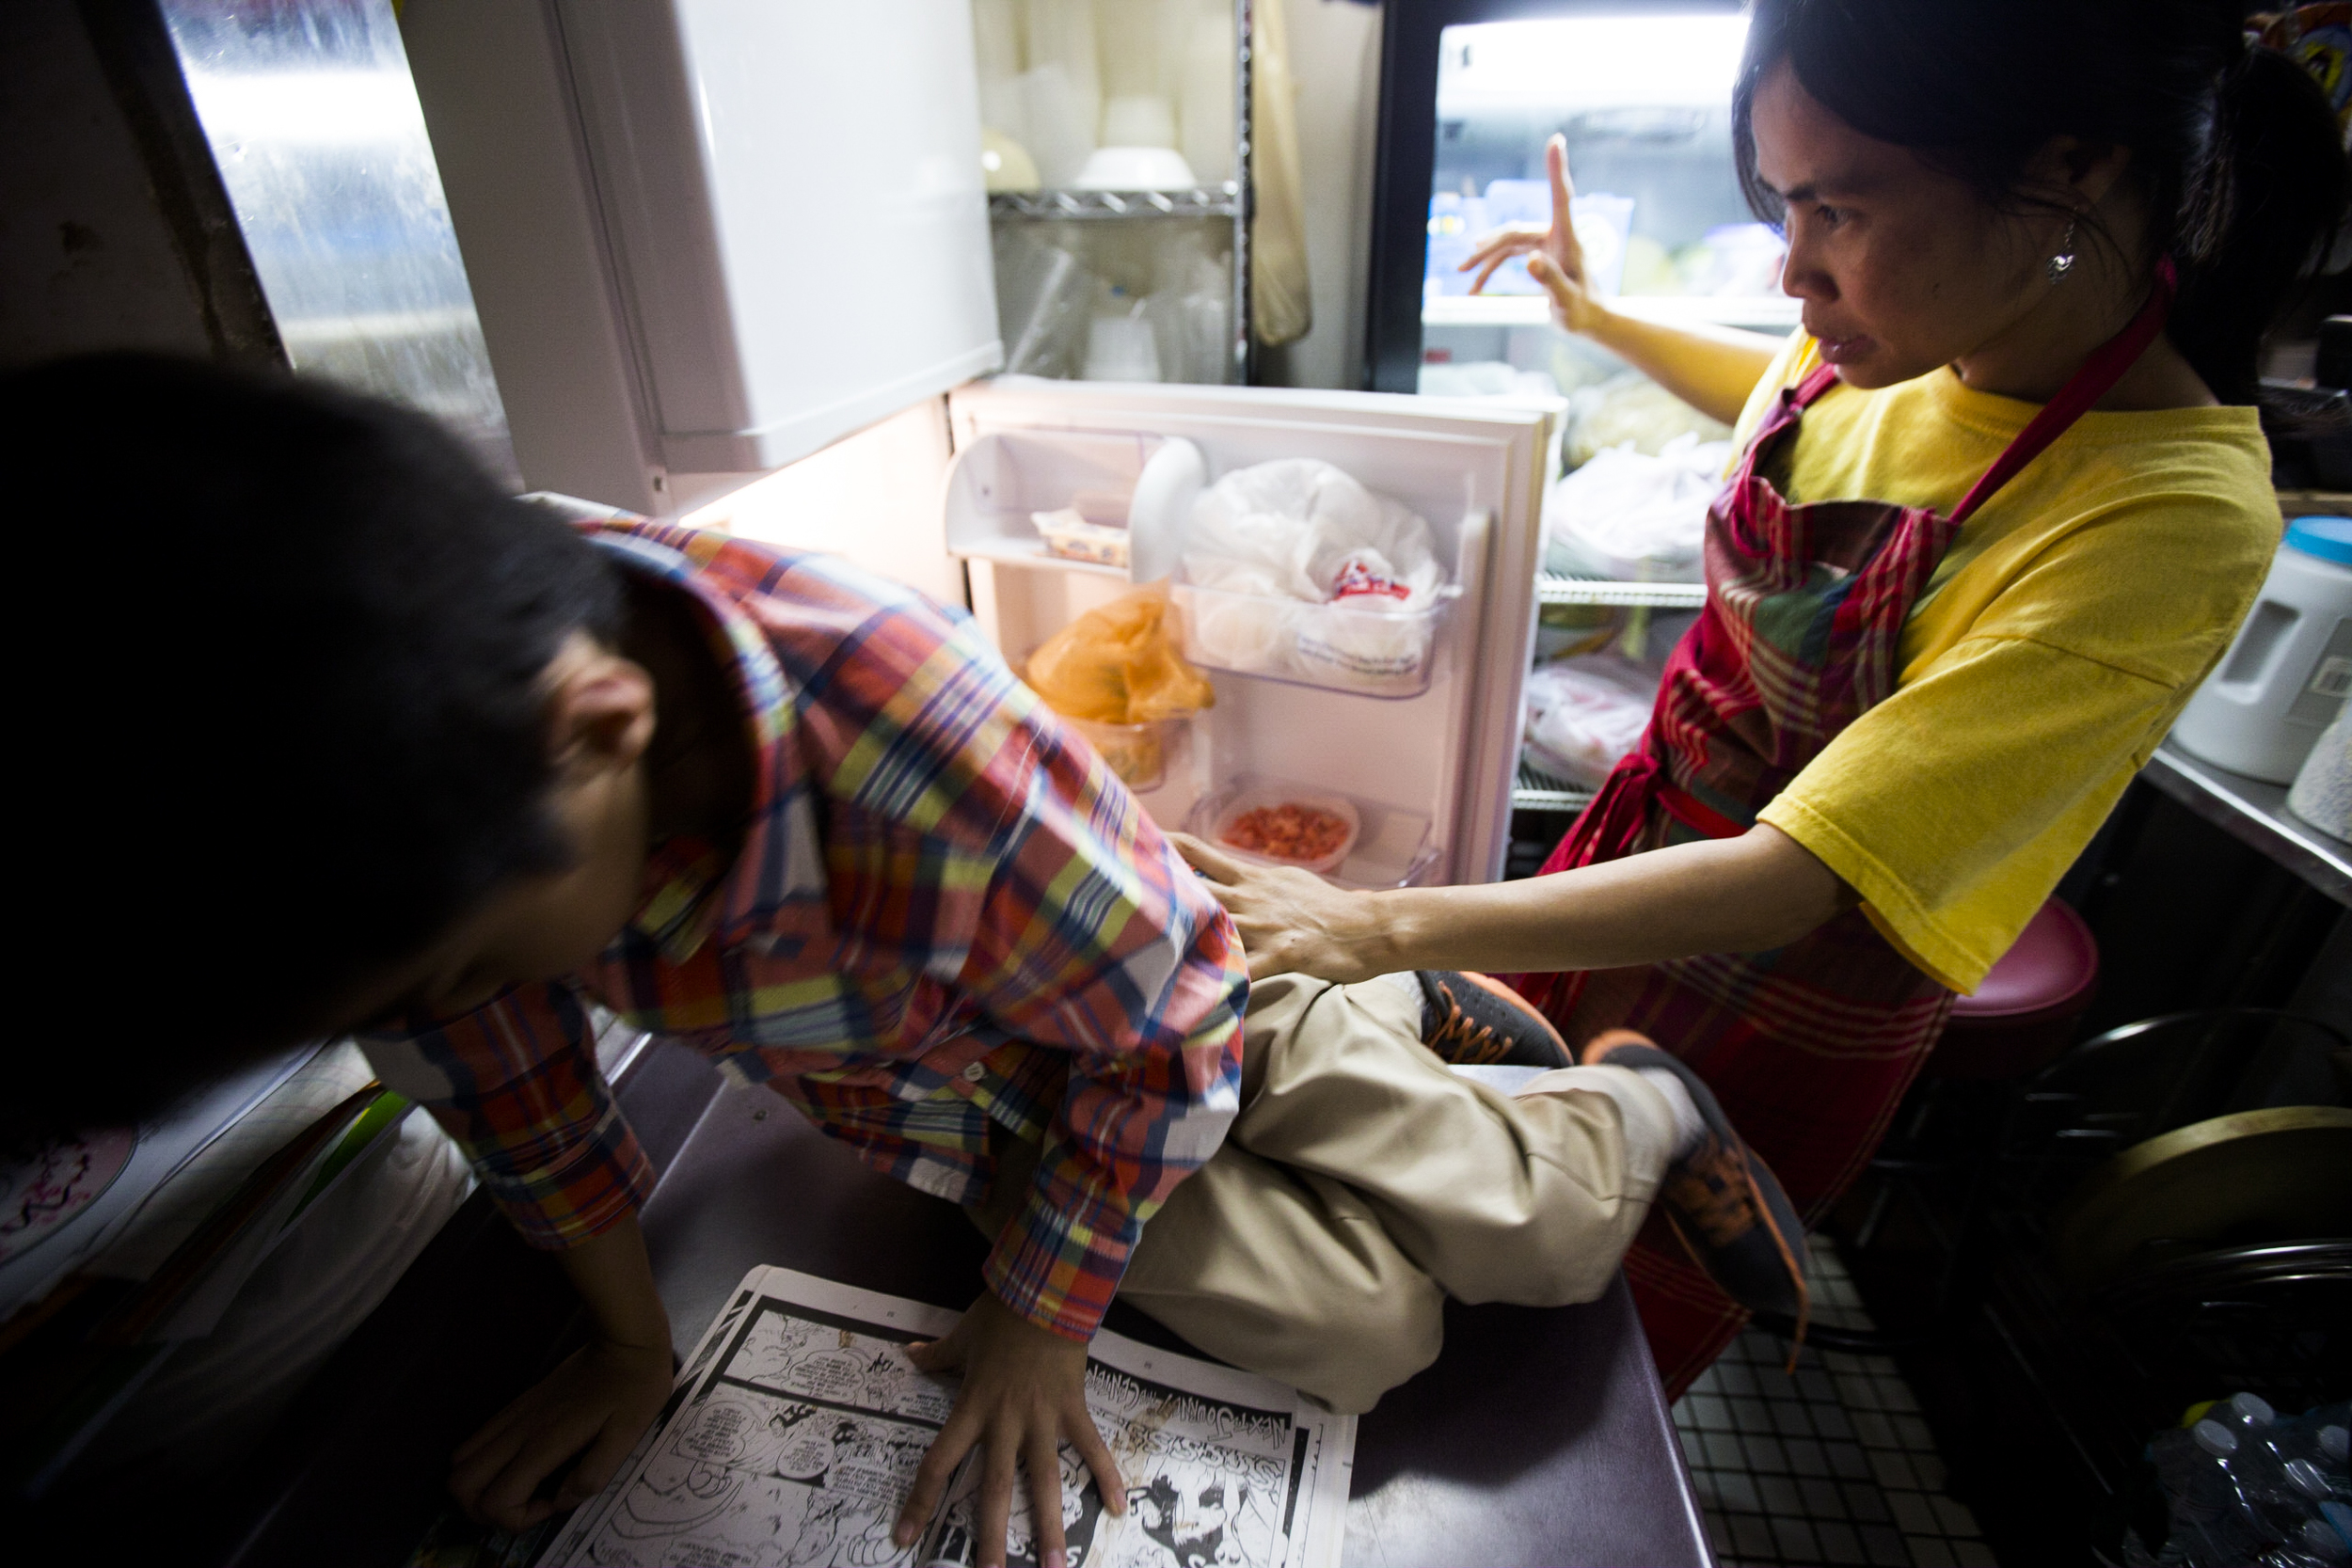 Thawdar Kway (R) collecting food from the fridge while talking to her son, Henry Kway (L). By Ann Wang